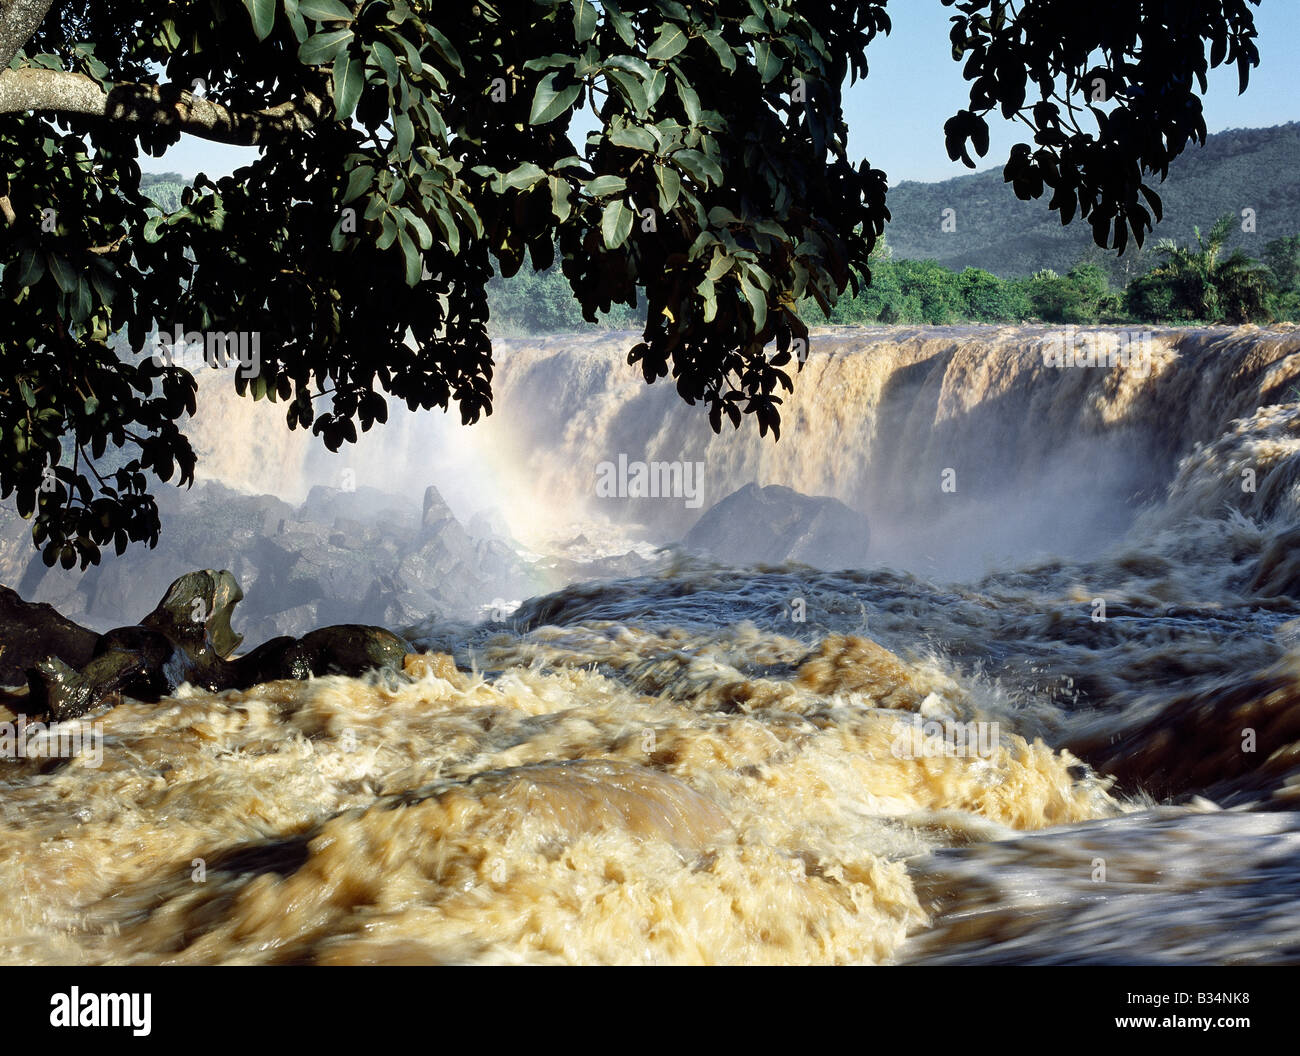 Kenya, Thika district, Athi River. Fourteen Falls on the Athi River after heavy rain. - Stock Image